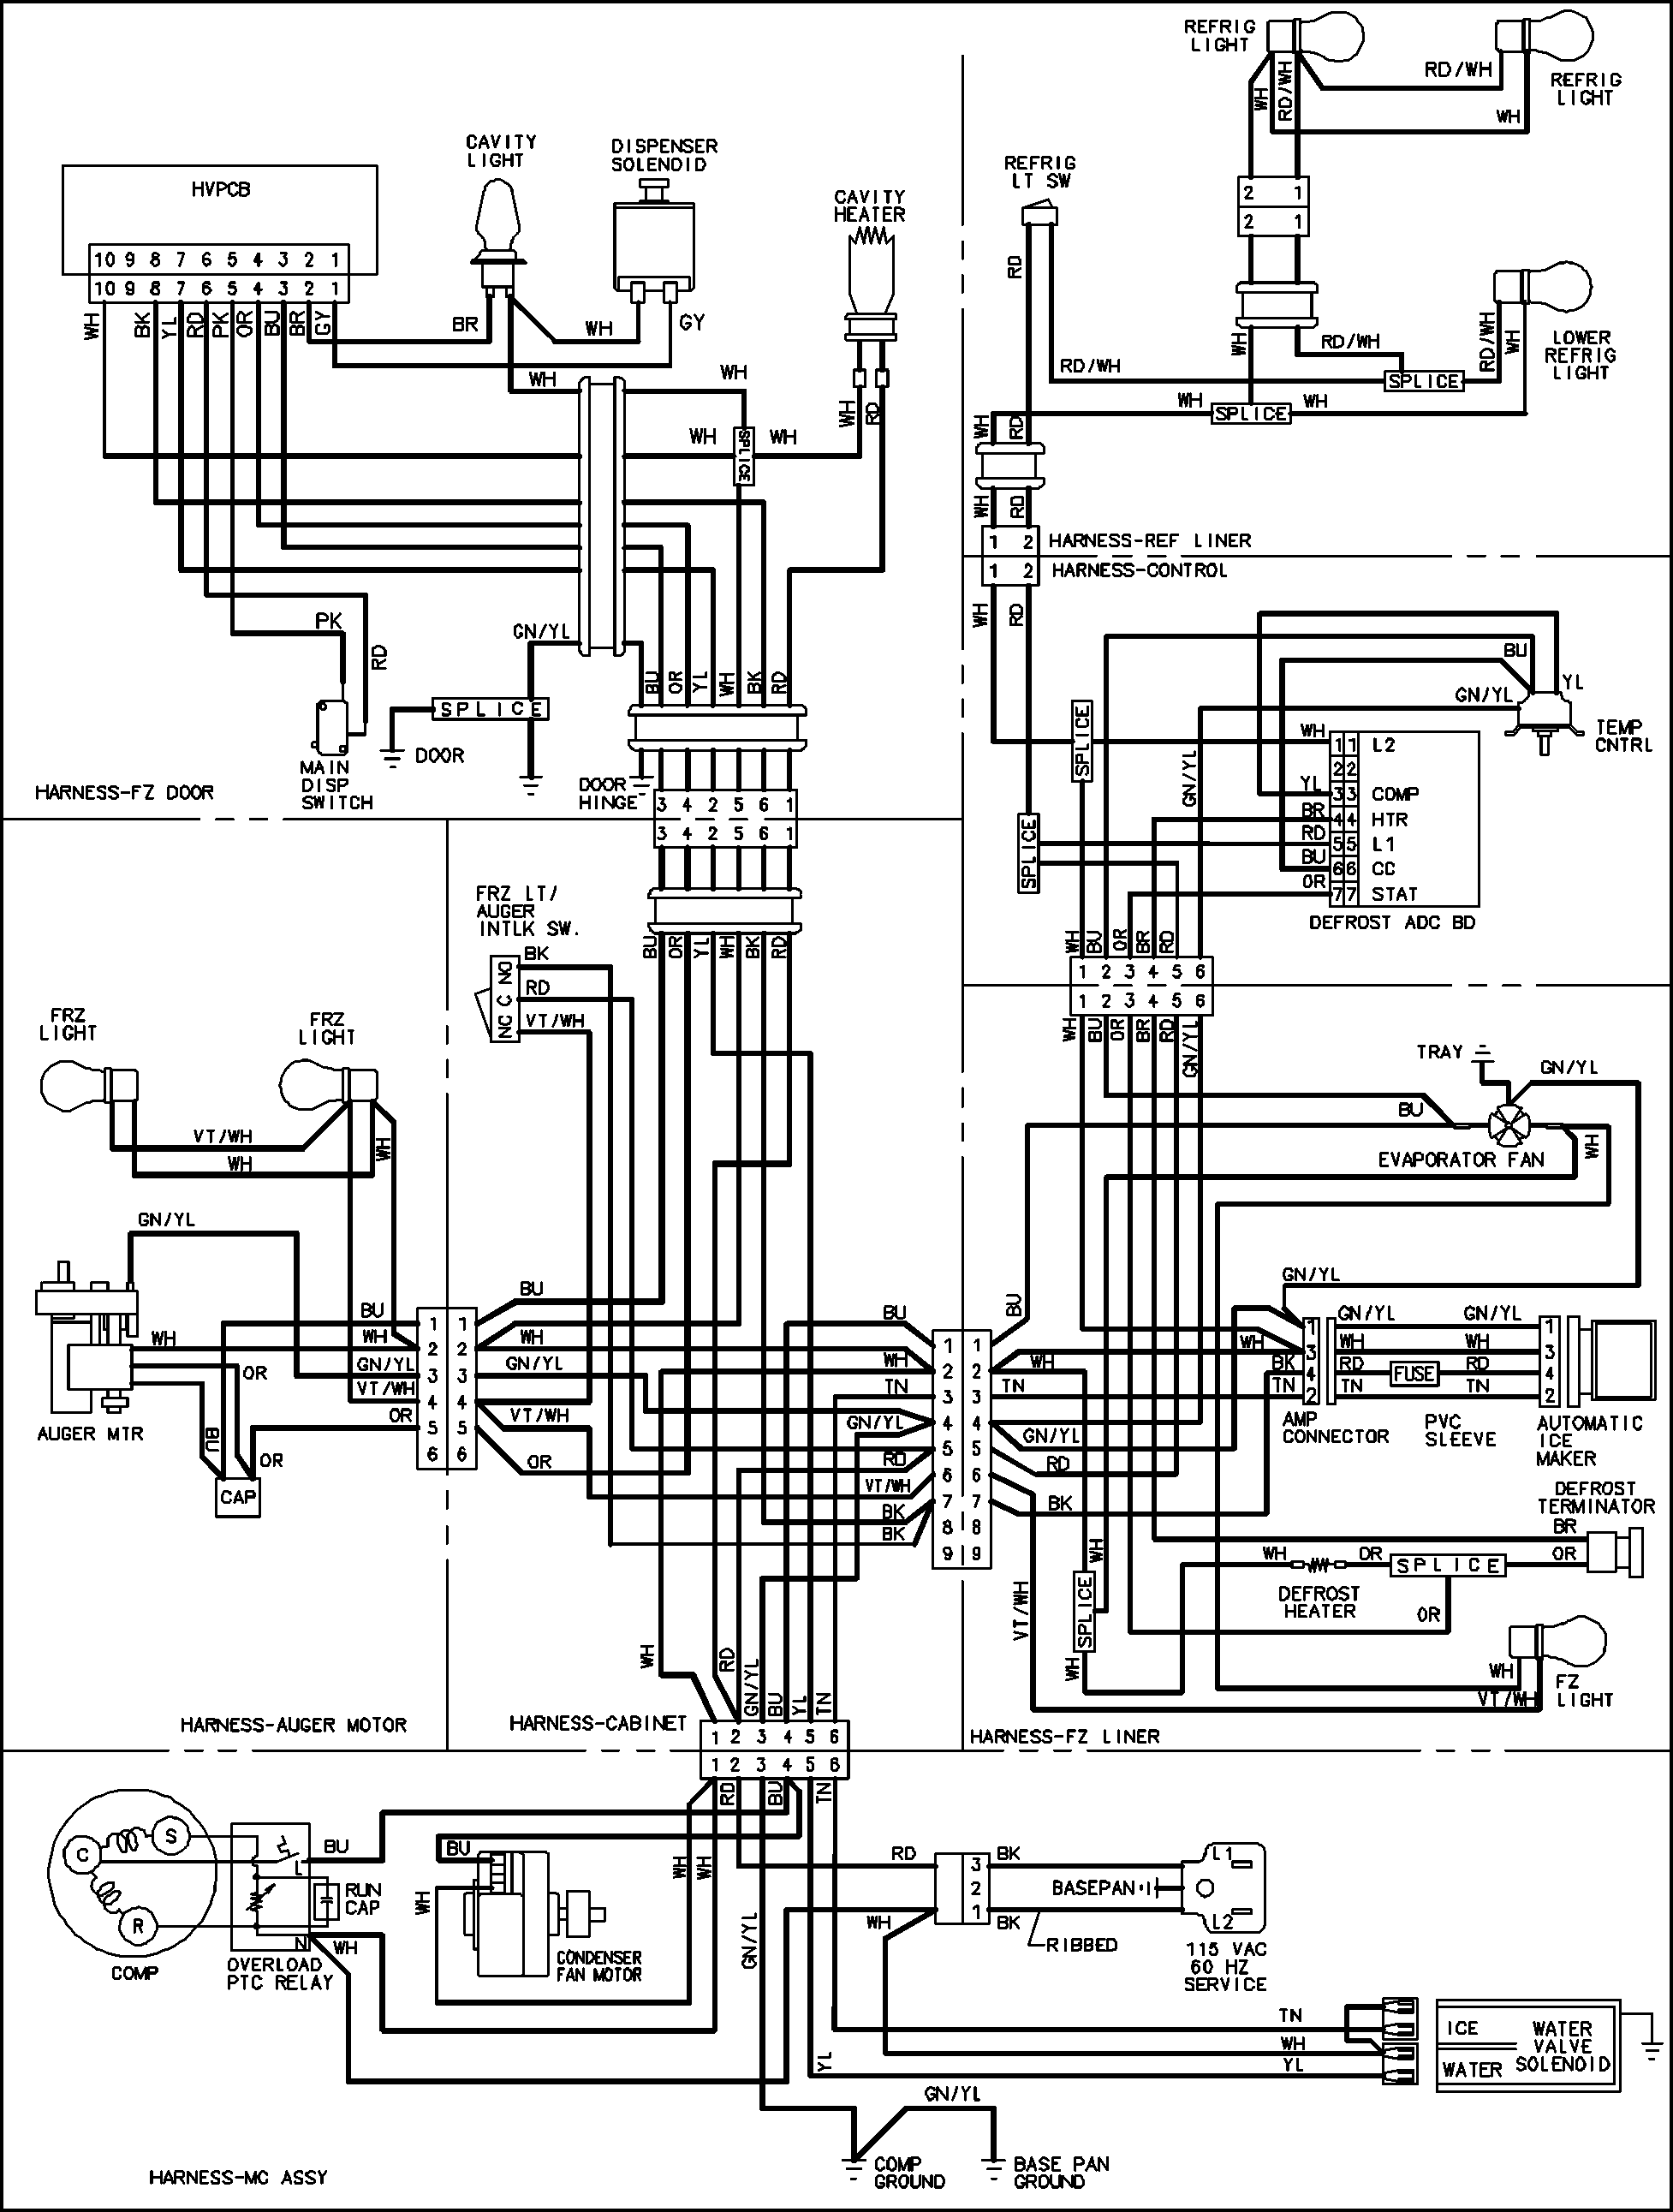 hight resolution of favorite amana refrigerator wiring diagram amana refrigerator wiring diagram 1954 x 2583 44 kb png